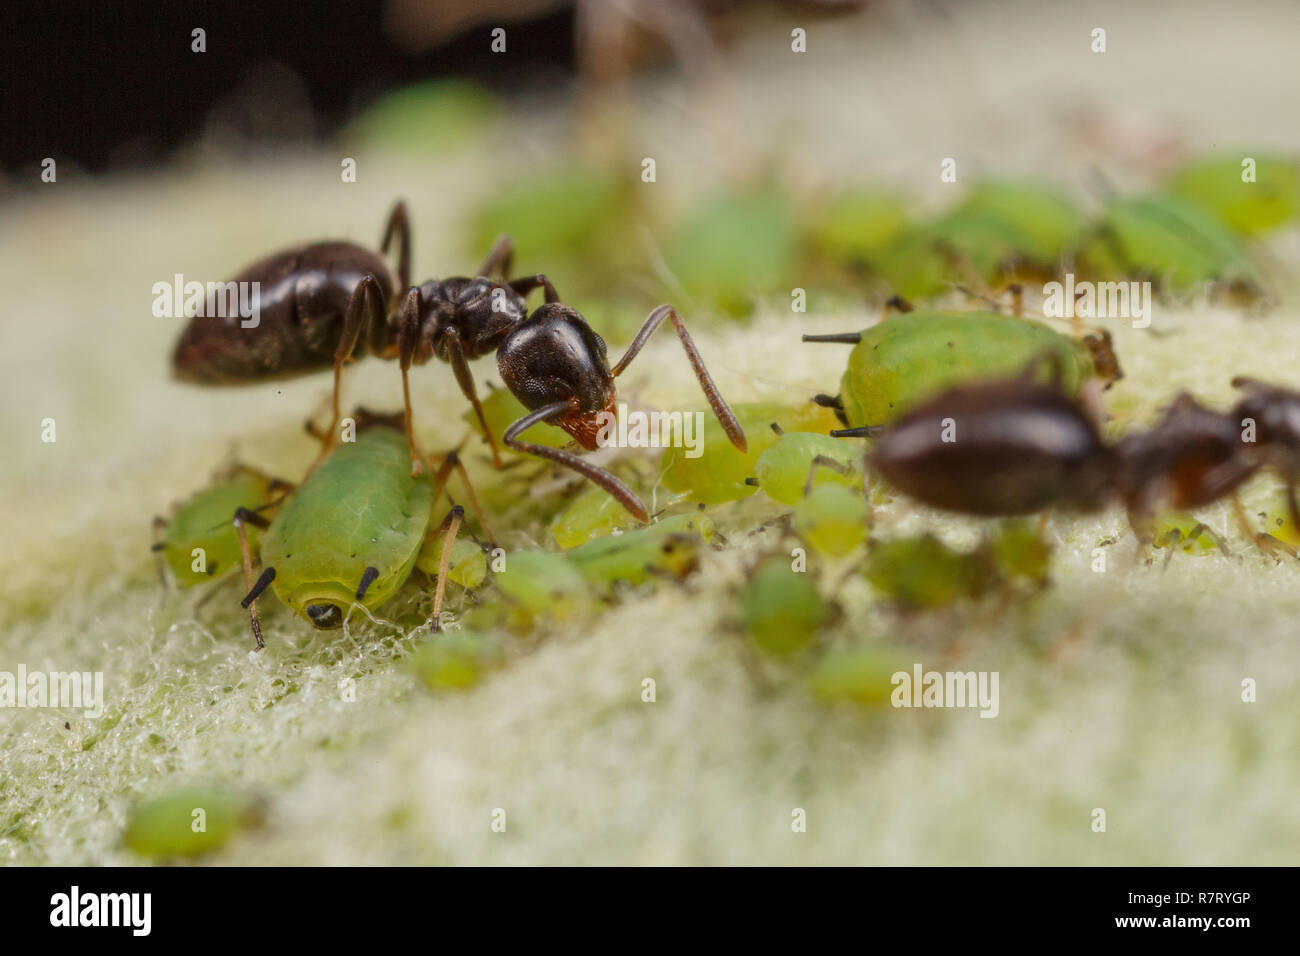 Technomyrmex ants tending green aphids on an apple tree, Albany, Western Australia - Stock Image